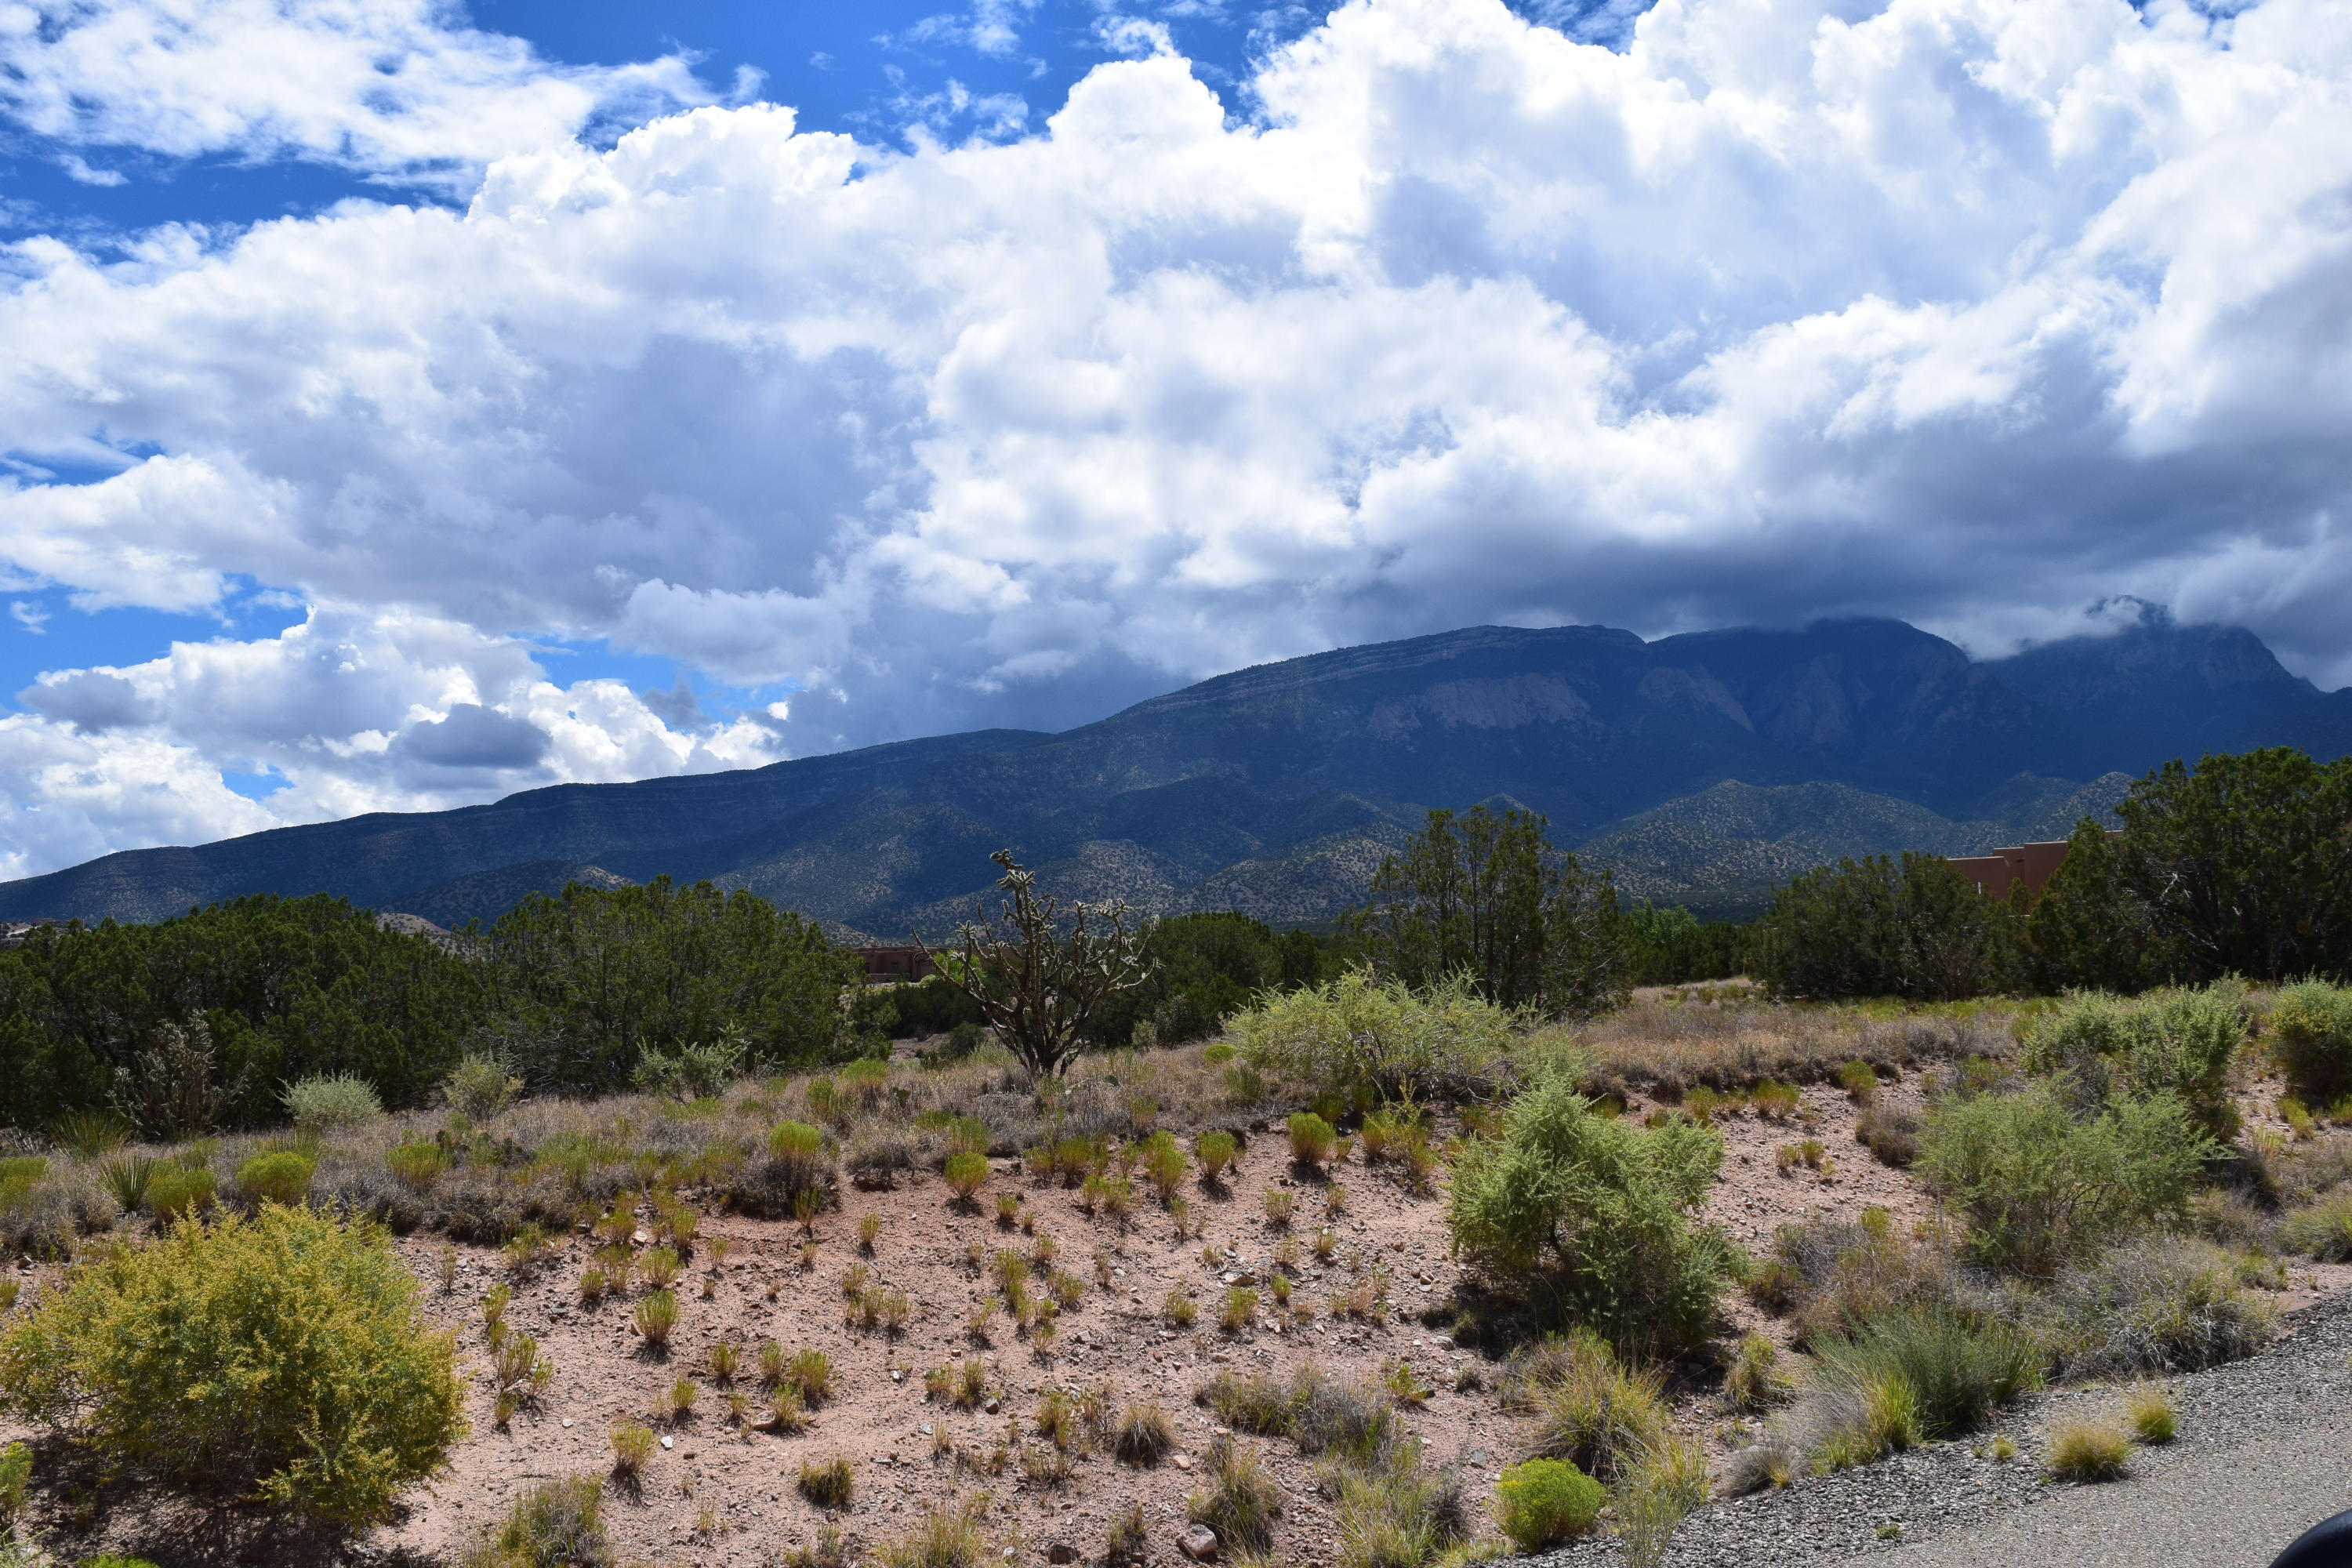 Lot 33 Apache Mesa Road, Placitas, NM 87043 - Placitas, NM real estate listing